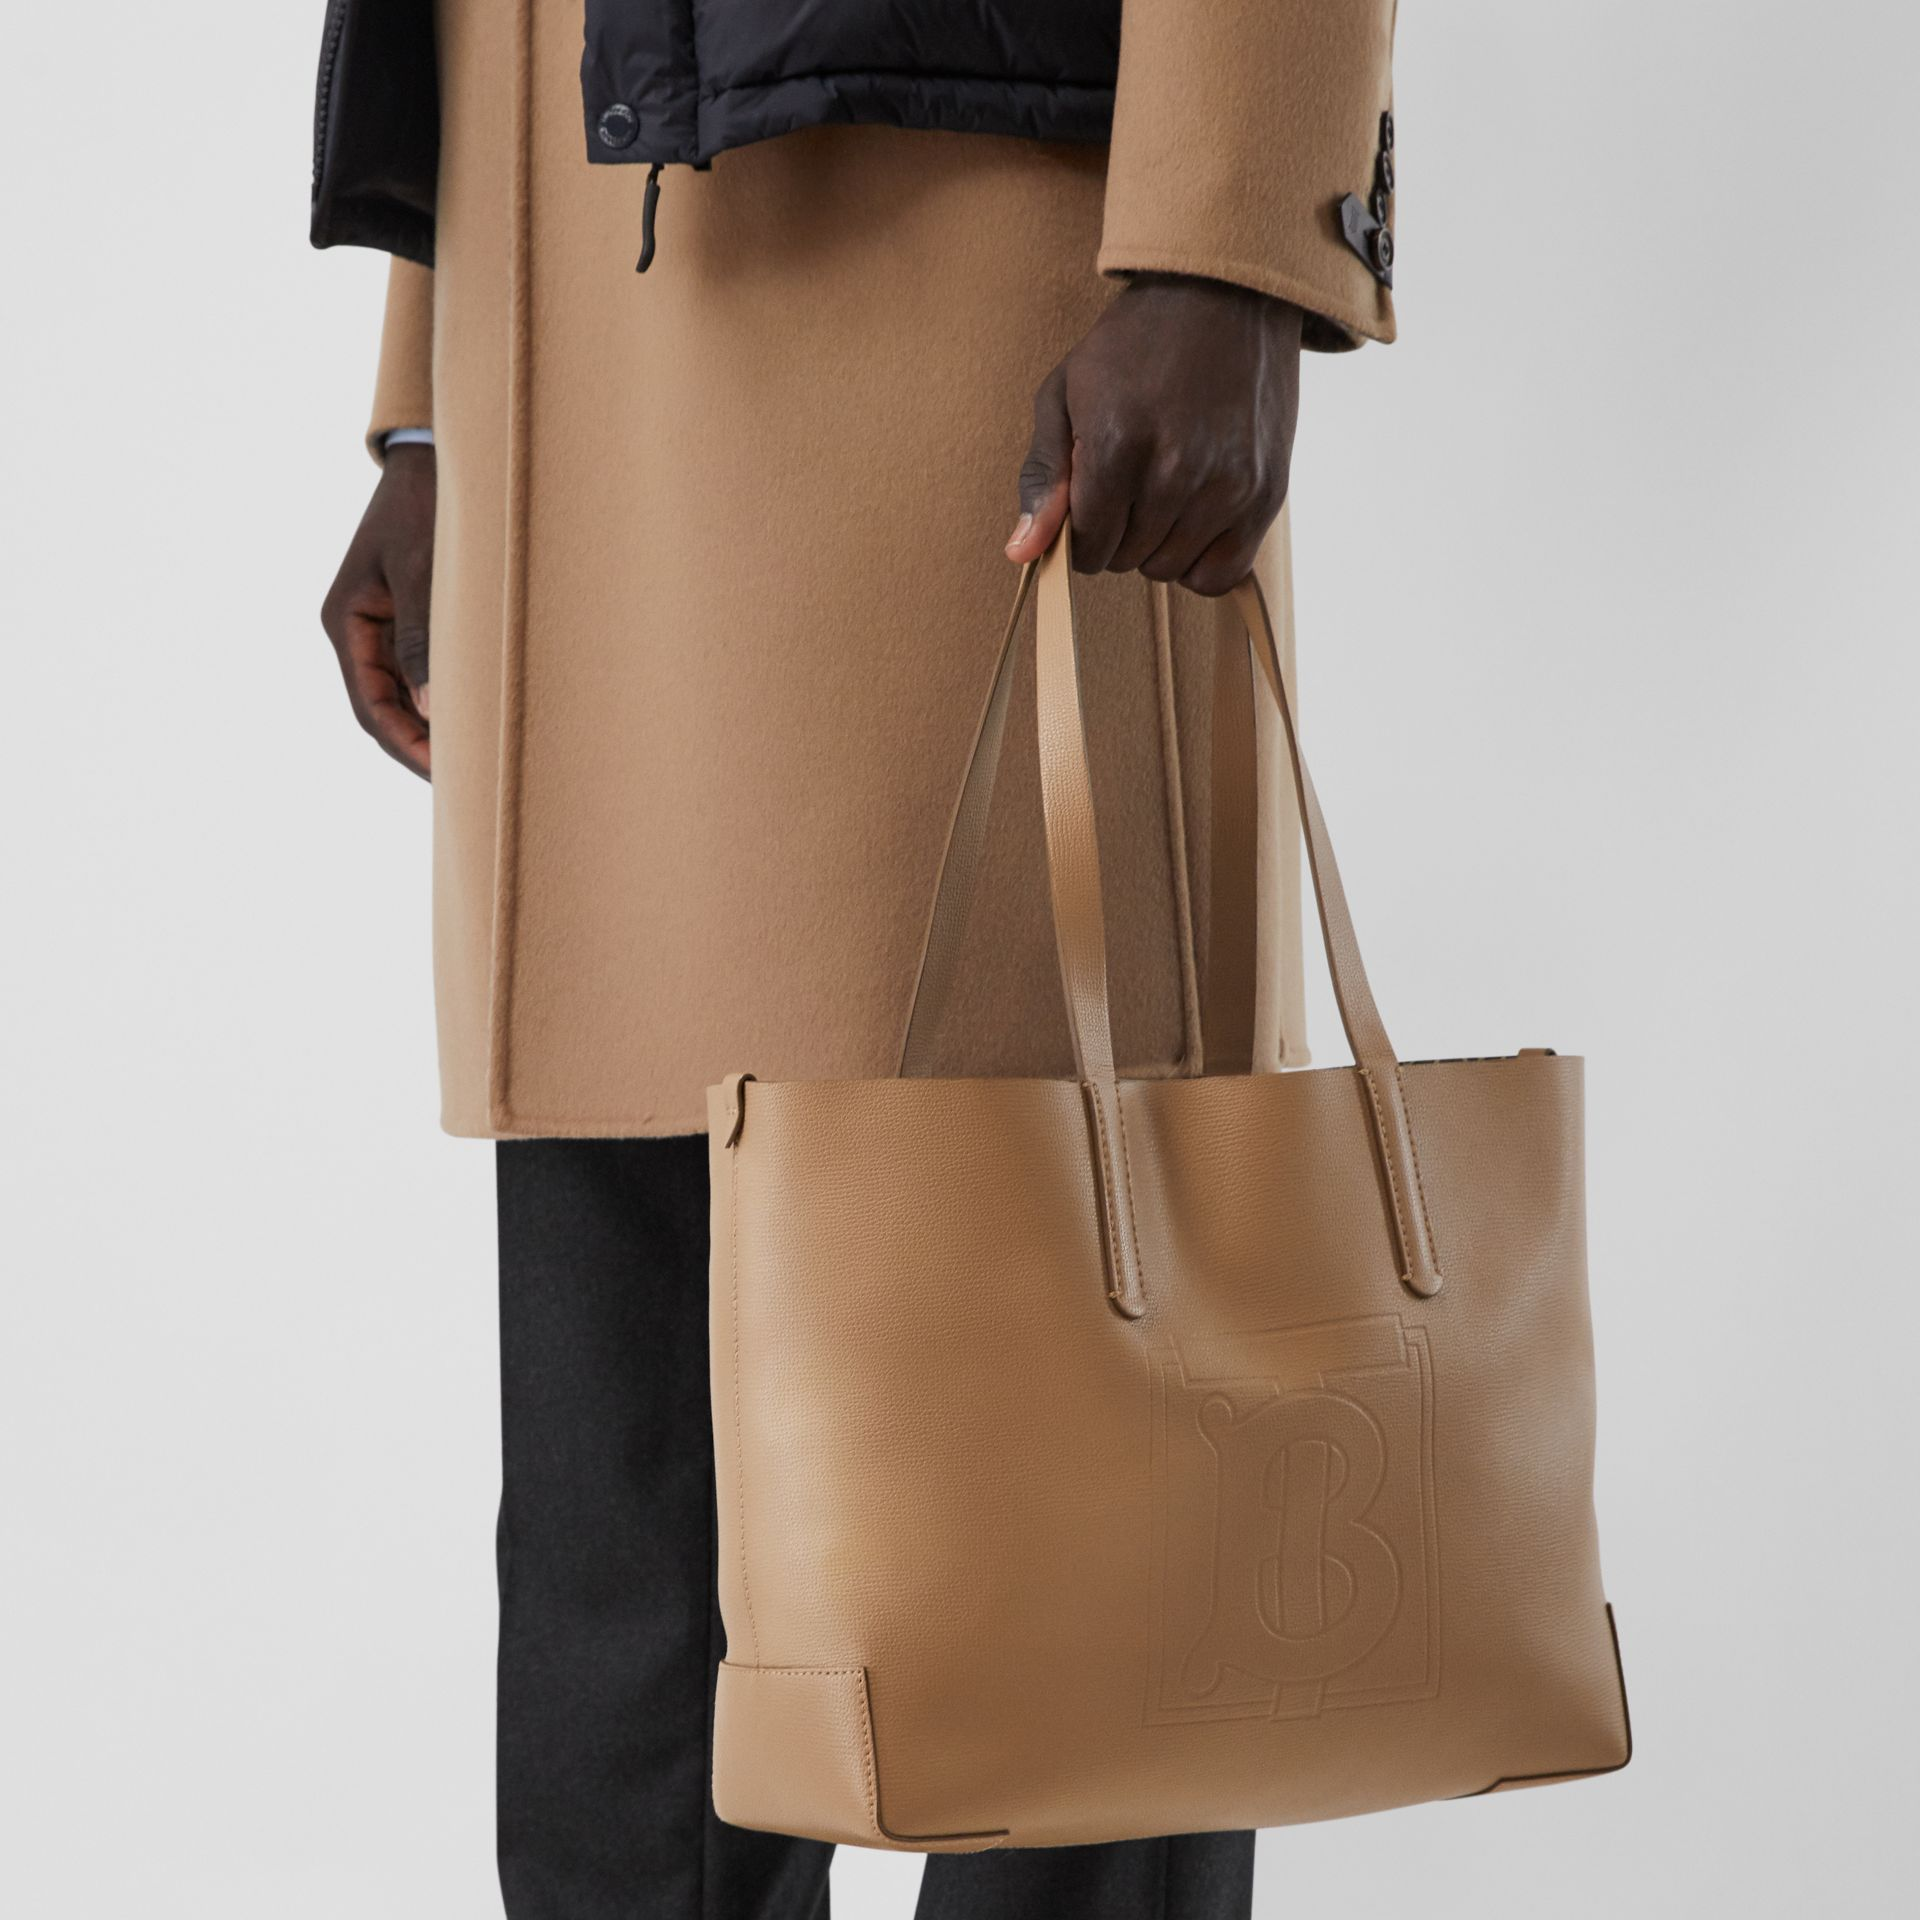 Embossed Monogram Motif Leather Tote in Camel - Women | Burberry Canada - gallery image 2